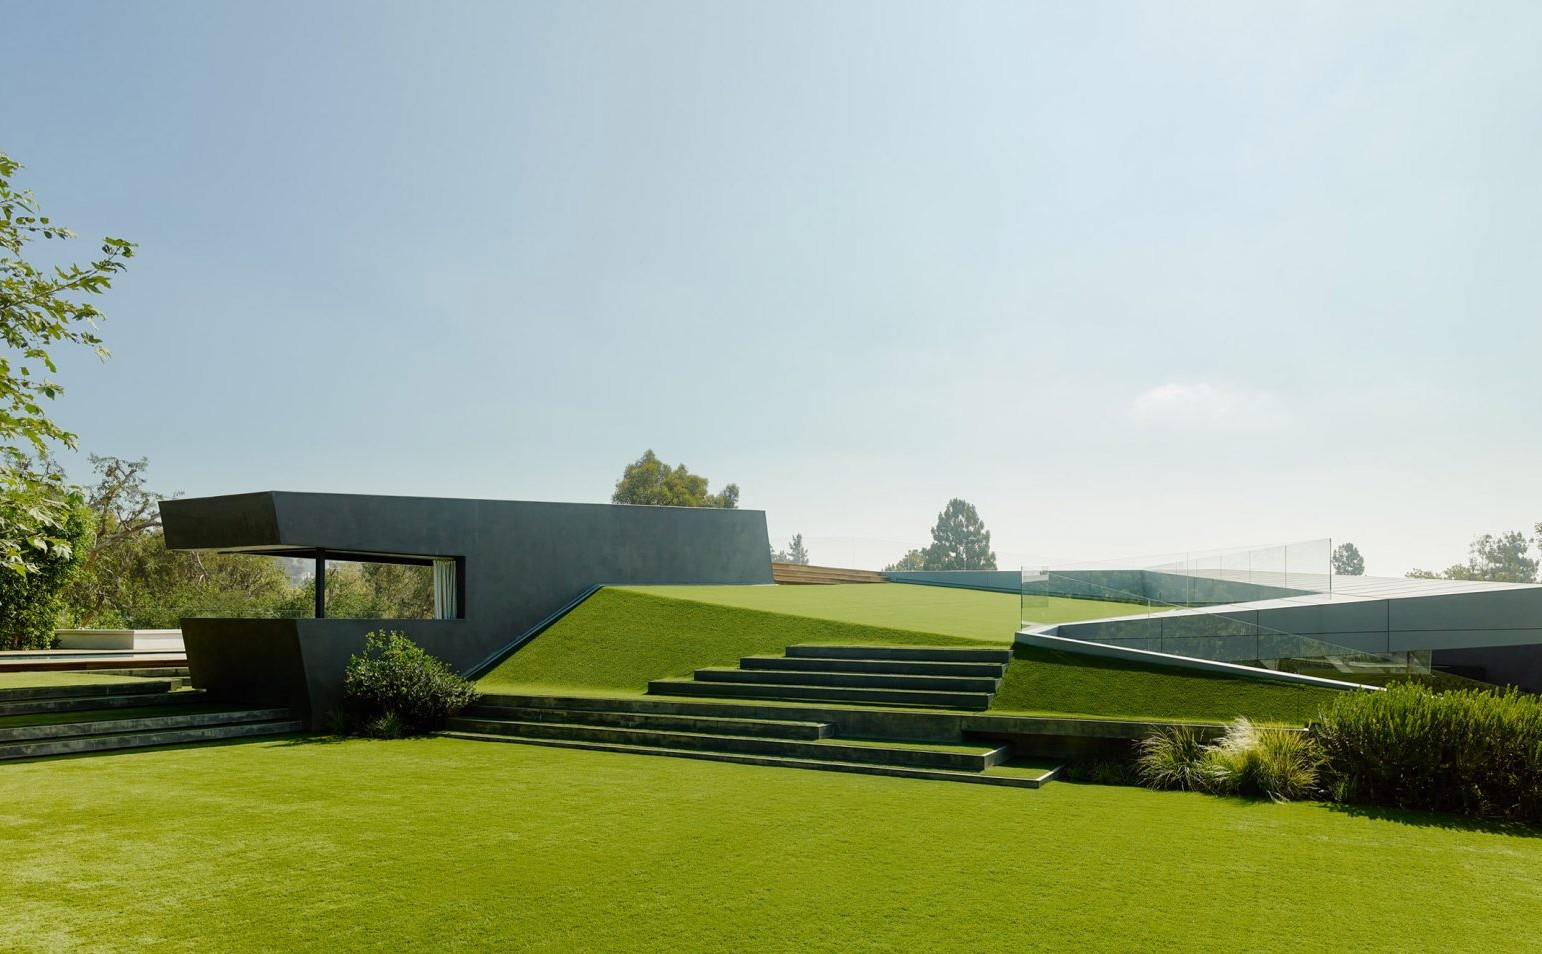 barrington-residence-eric-rosen-architects-architecture-california-usa_dezeen_2364_hero-1704x959